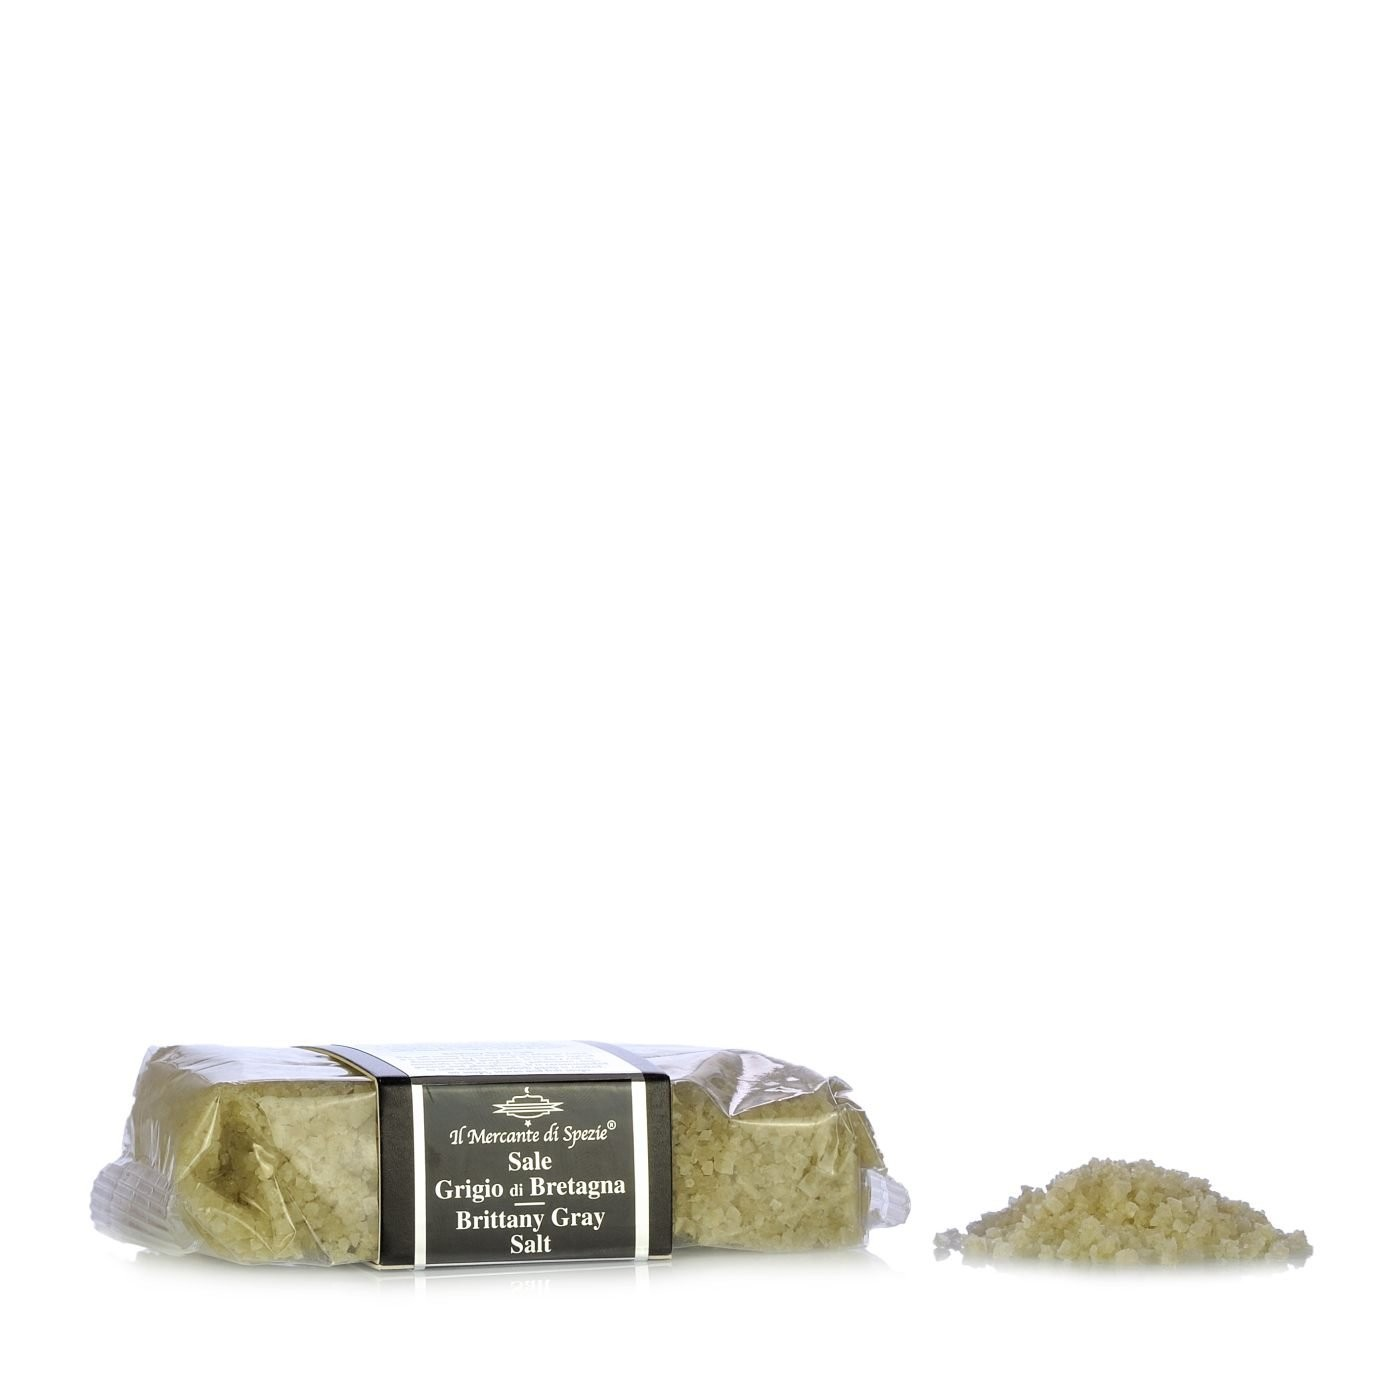 Grey Brittany Sea Salt 7.1 oz